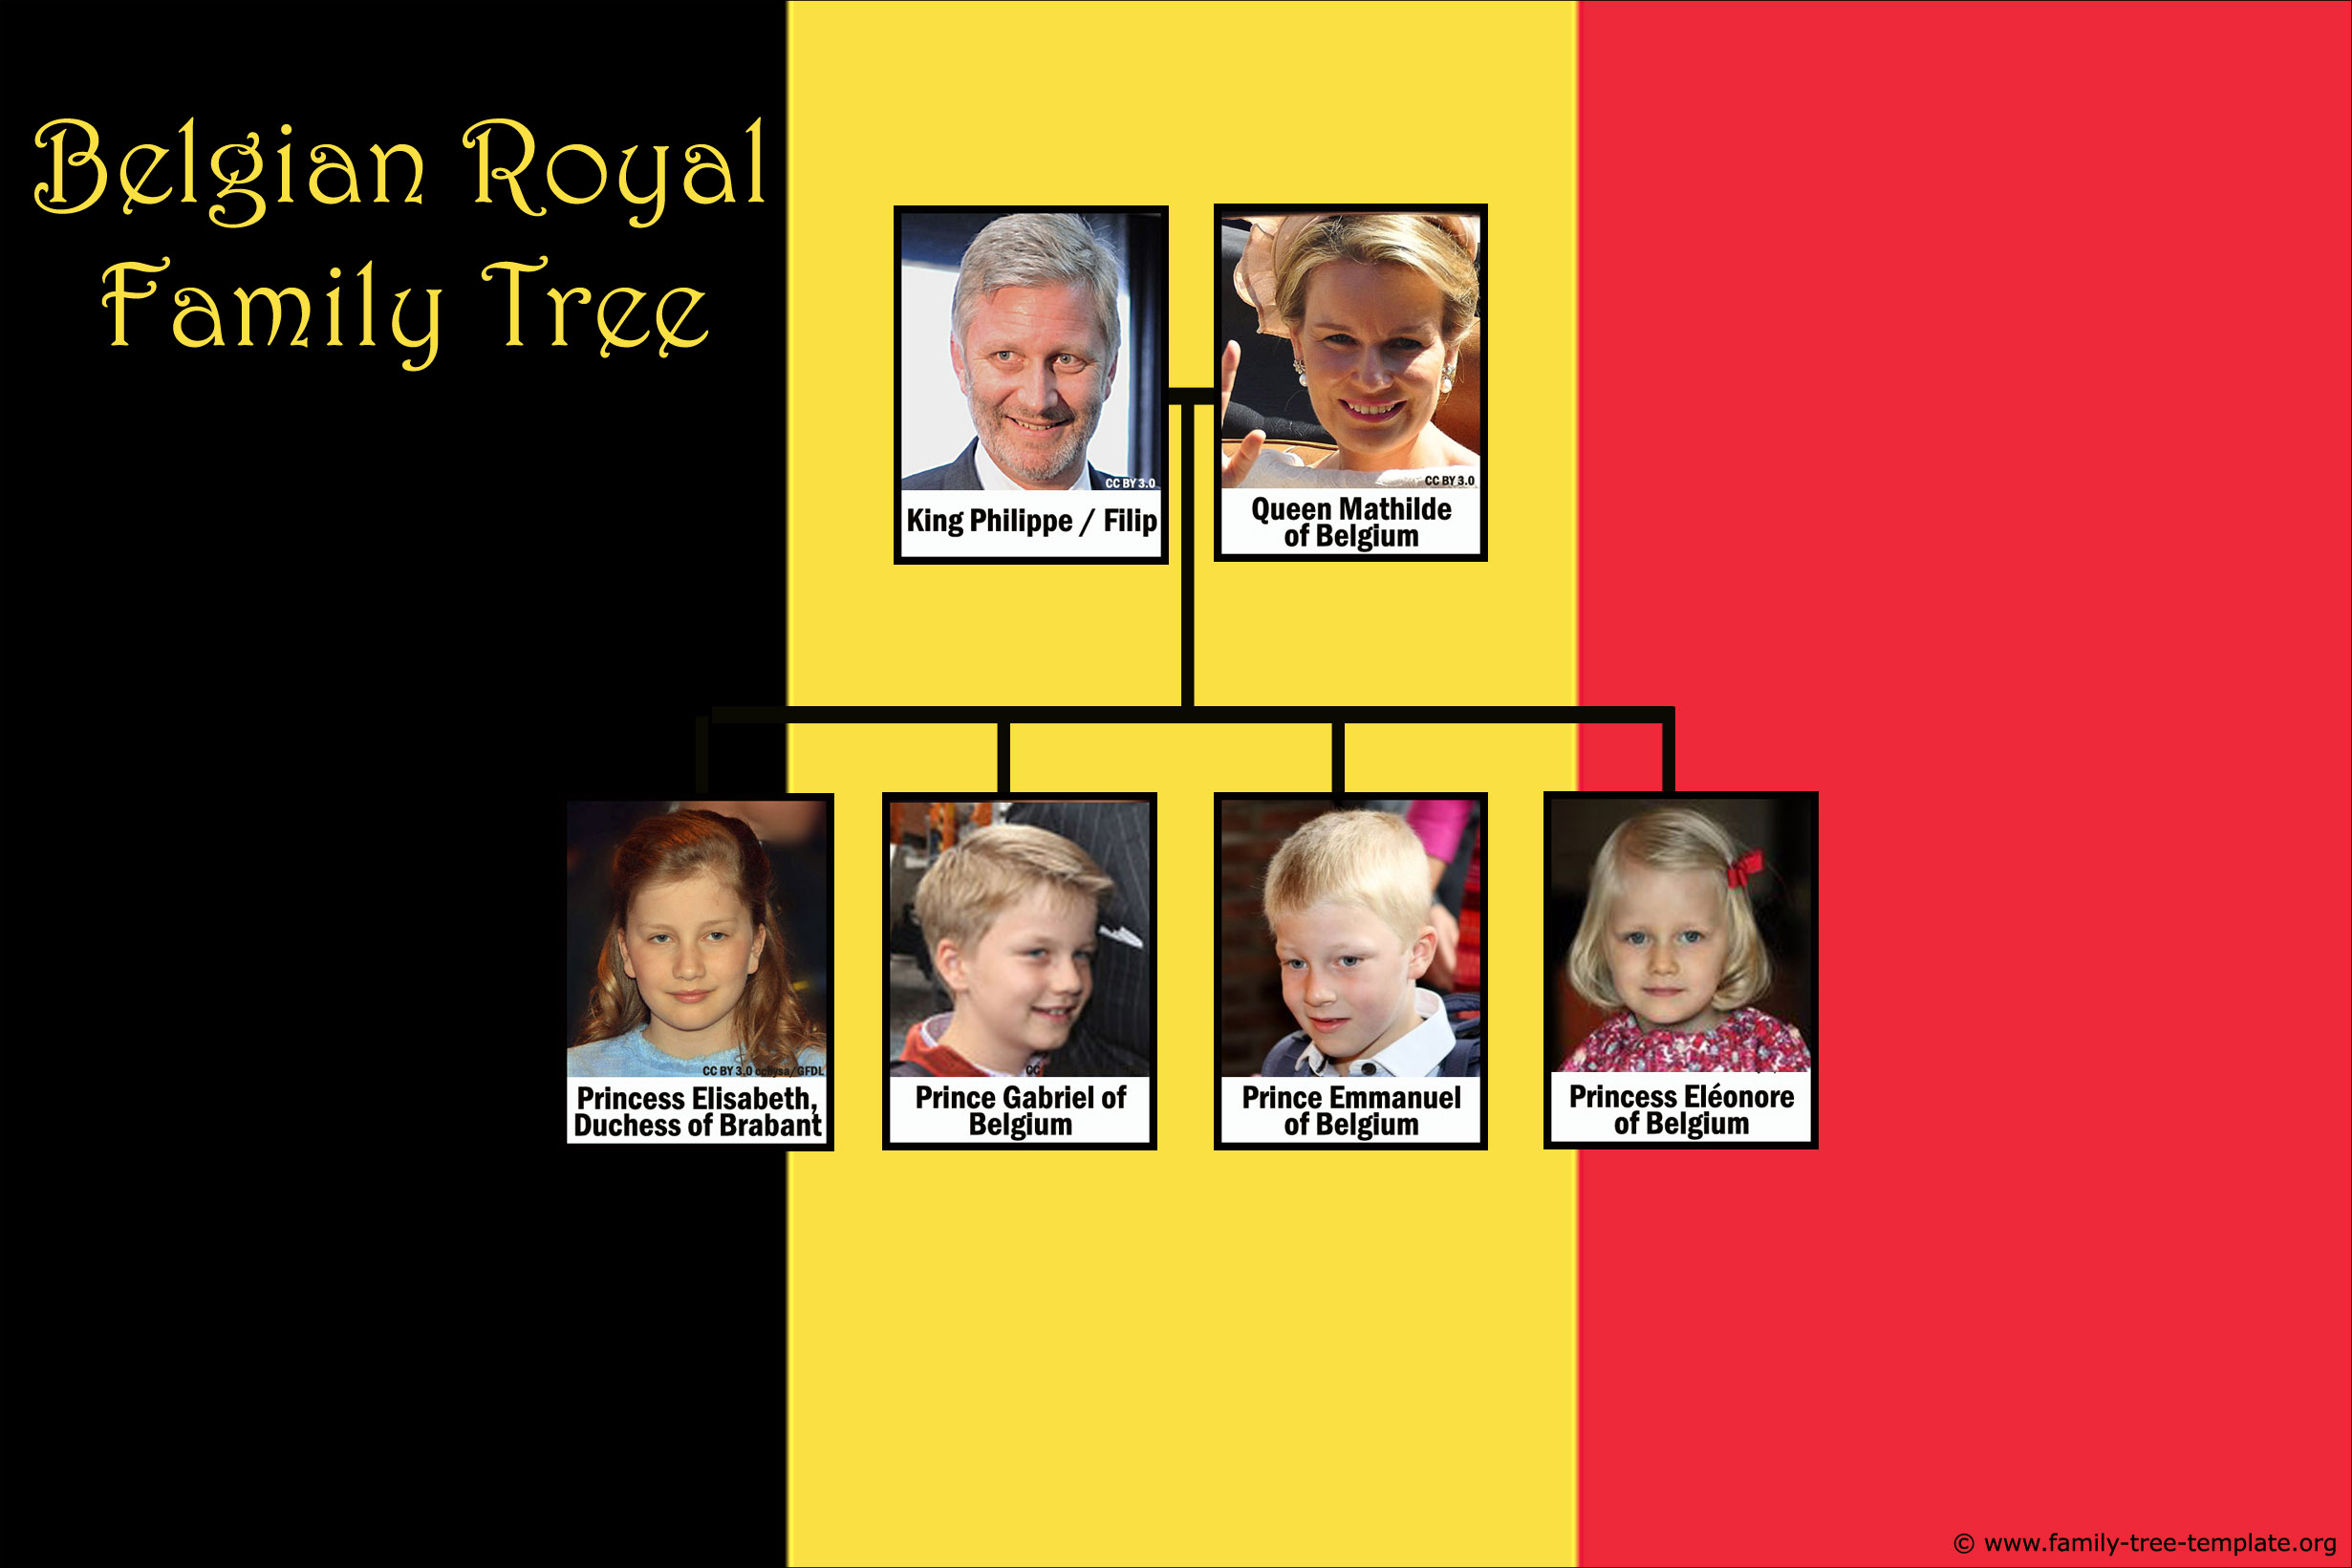 Royal genealogy tree of Belgium with King Philippe / Filip